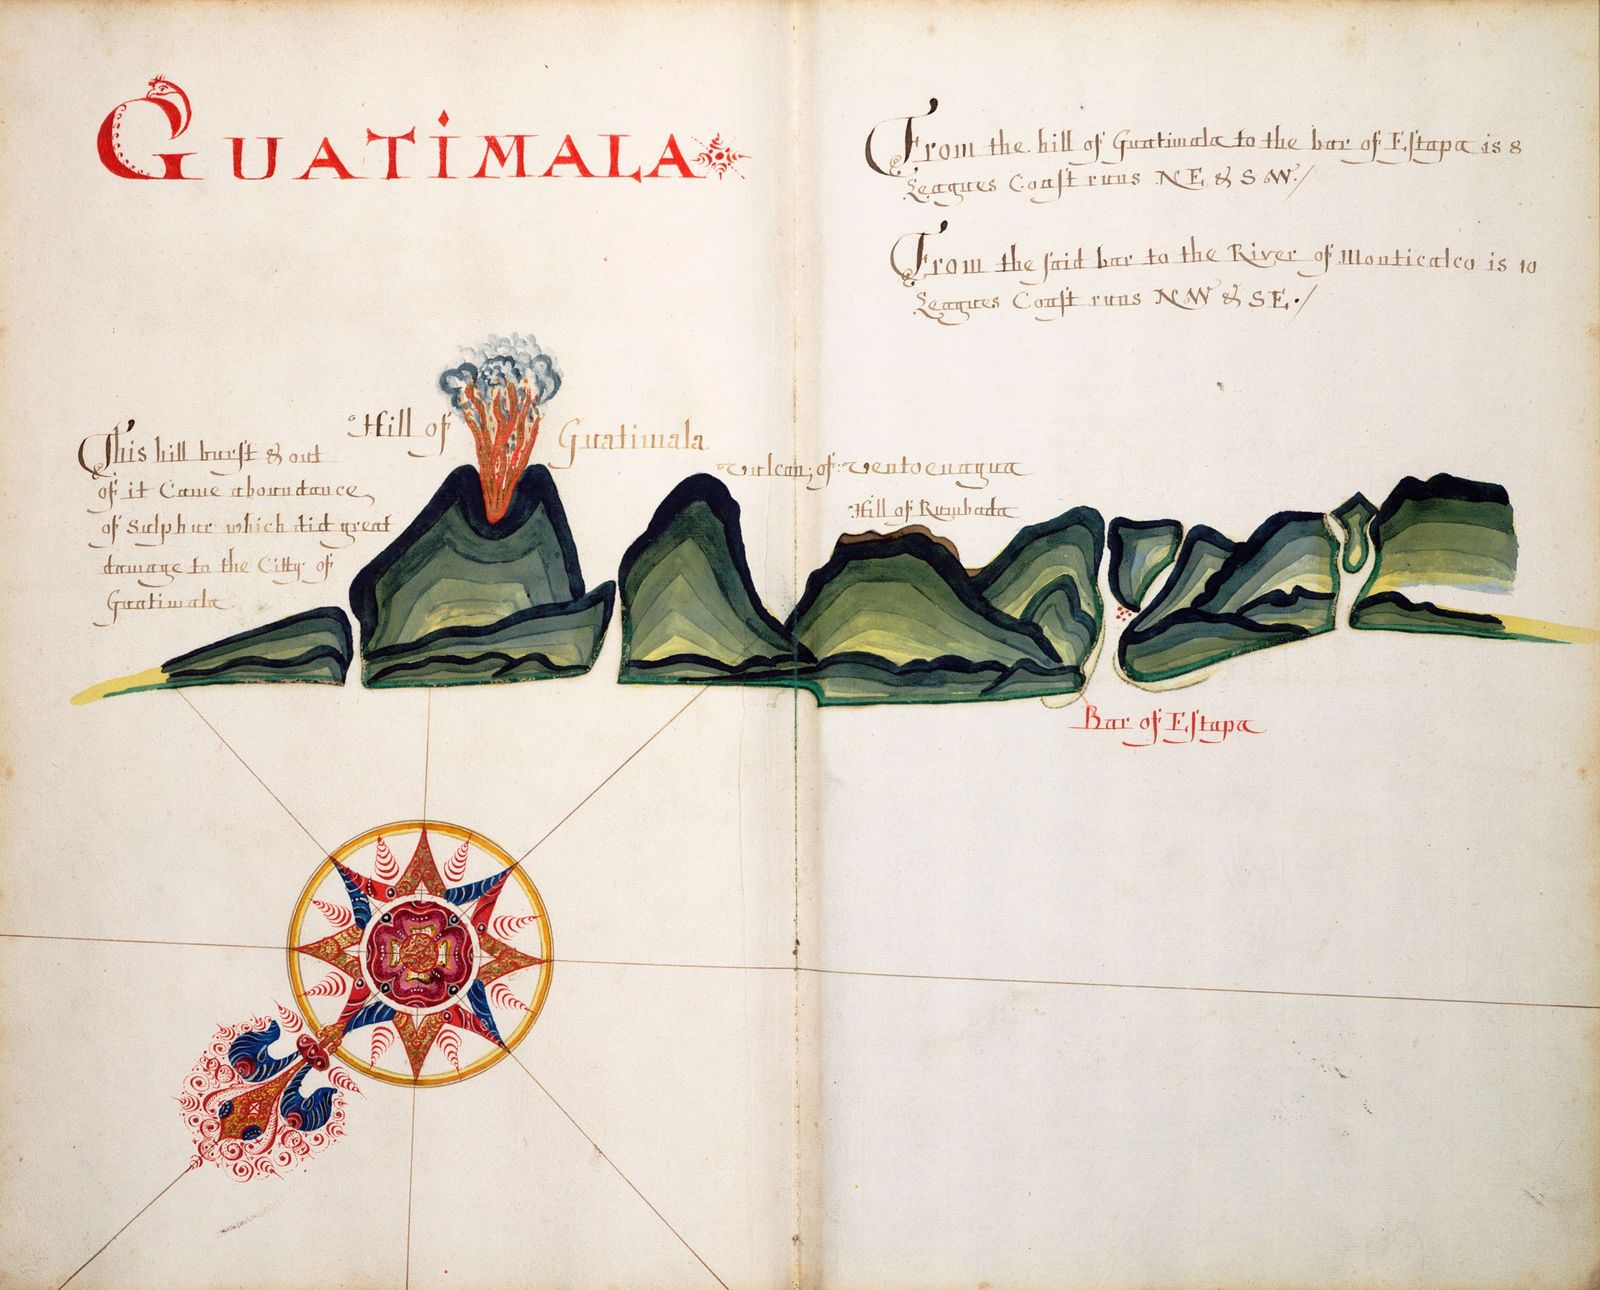 Explore an English pirate's plundered atlas